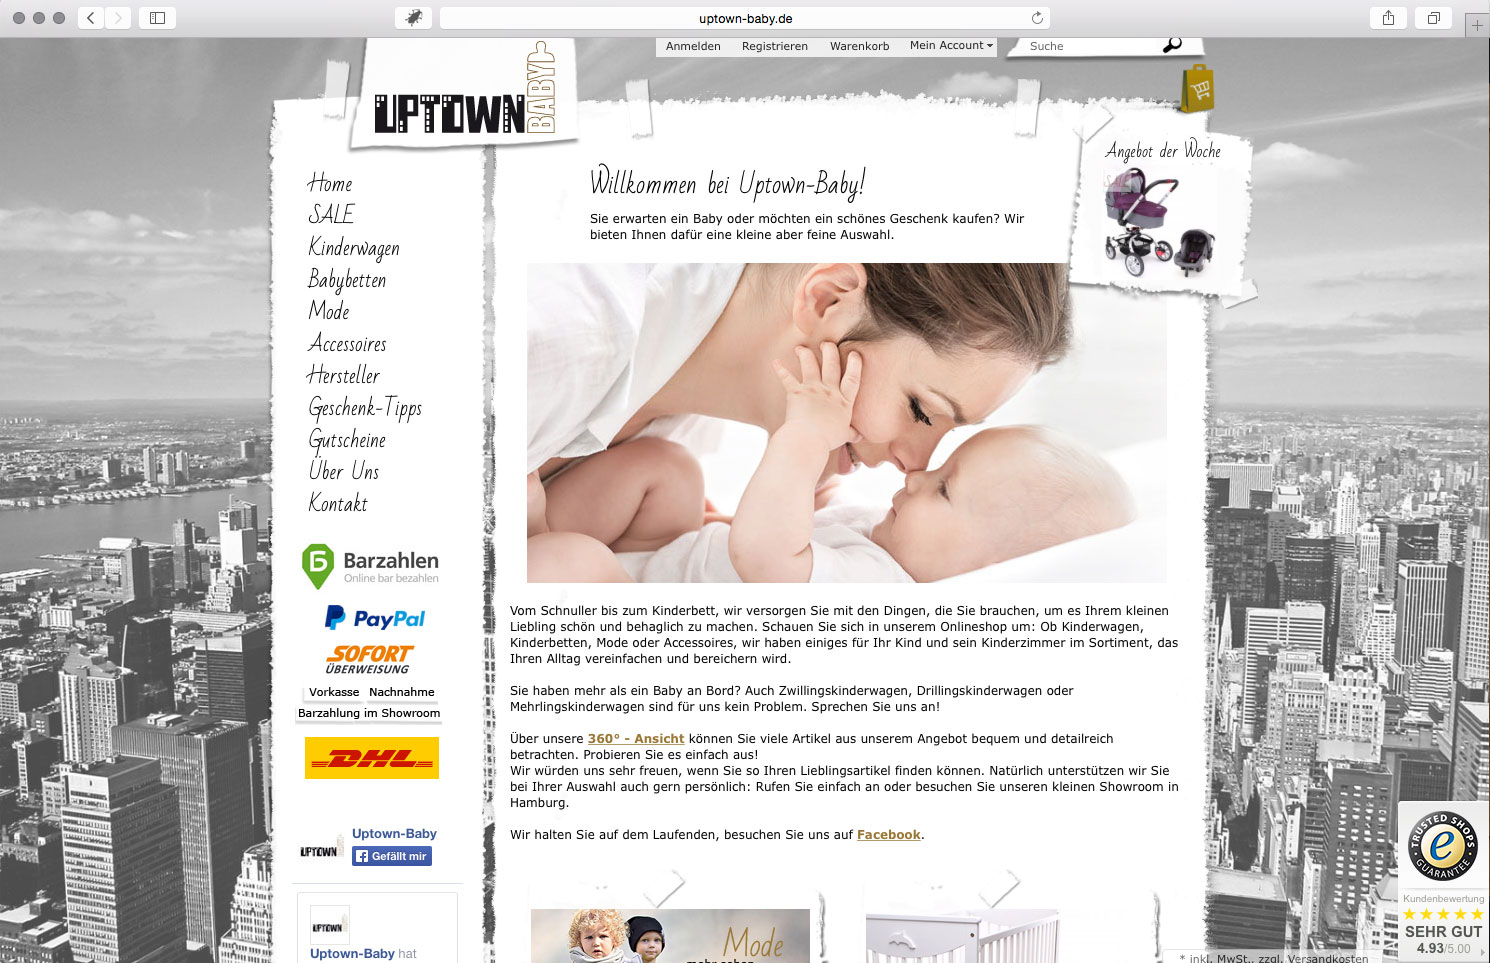 brainbreak Grafik Onlineshop Referenz: Uptown-Baby